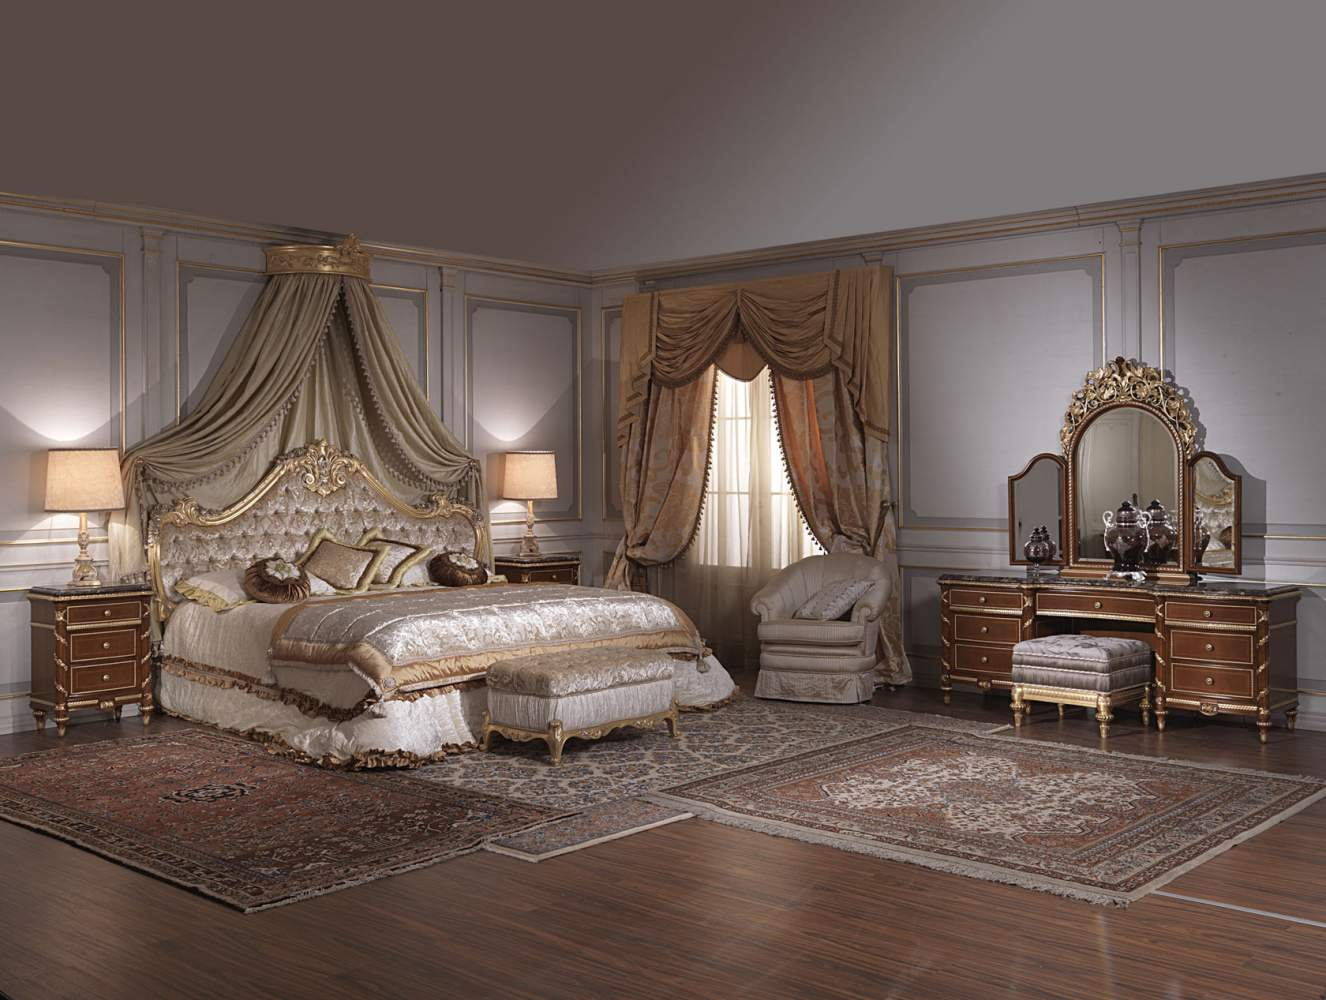 chambre coucher classique xviiie si cle italien toilette et tables de nuit louis xv. Black Bedroom Furniture Sets. Home Design Ideas